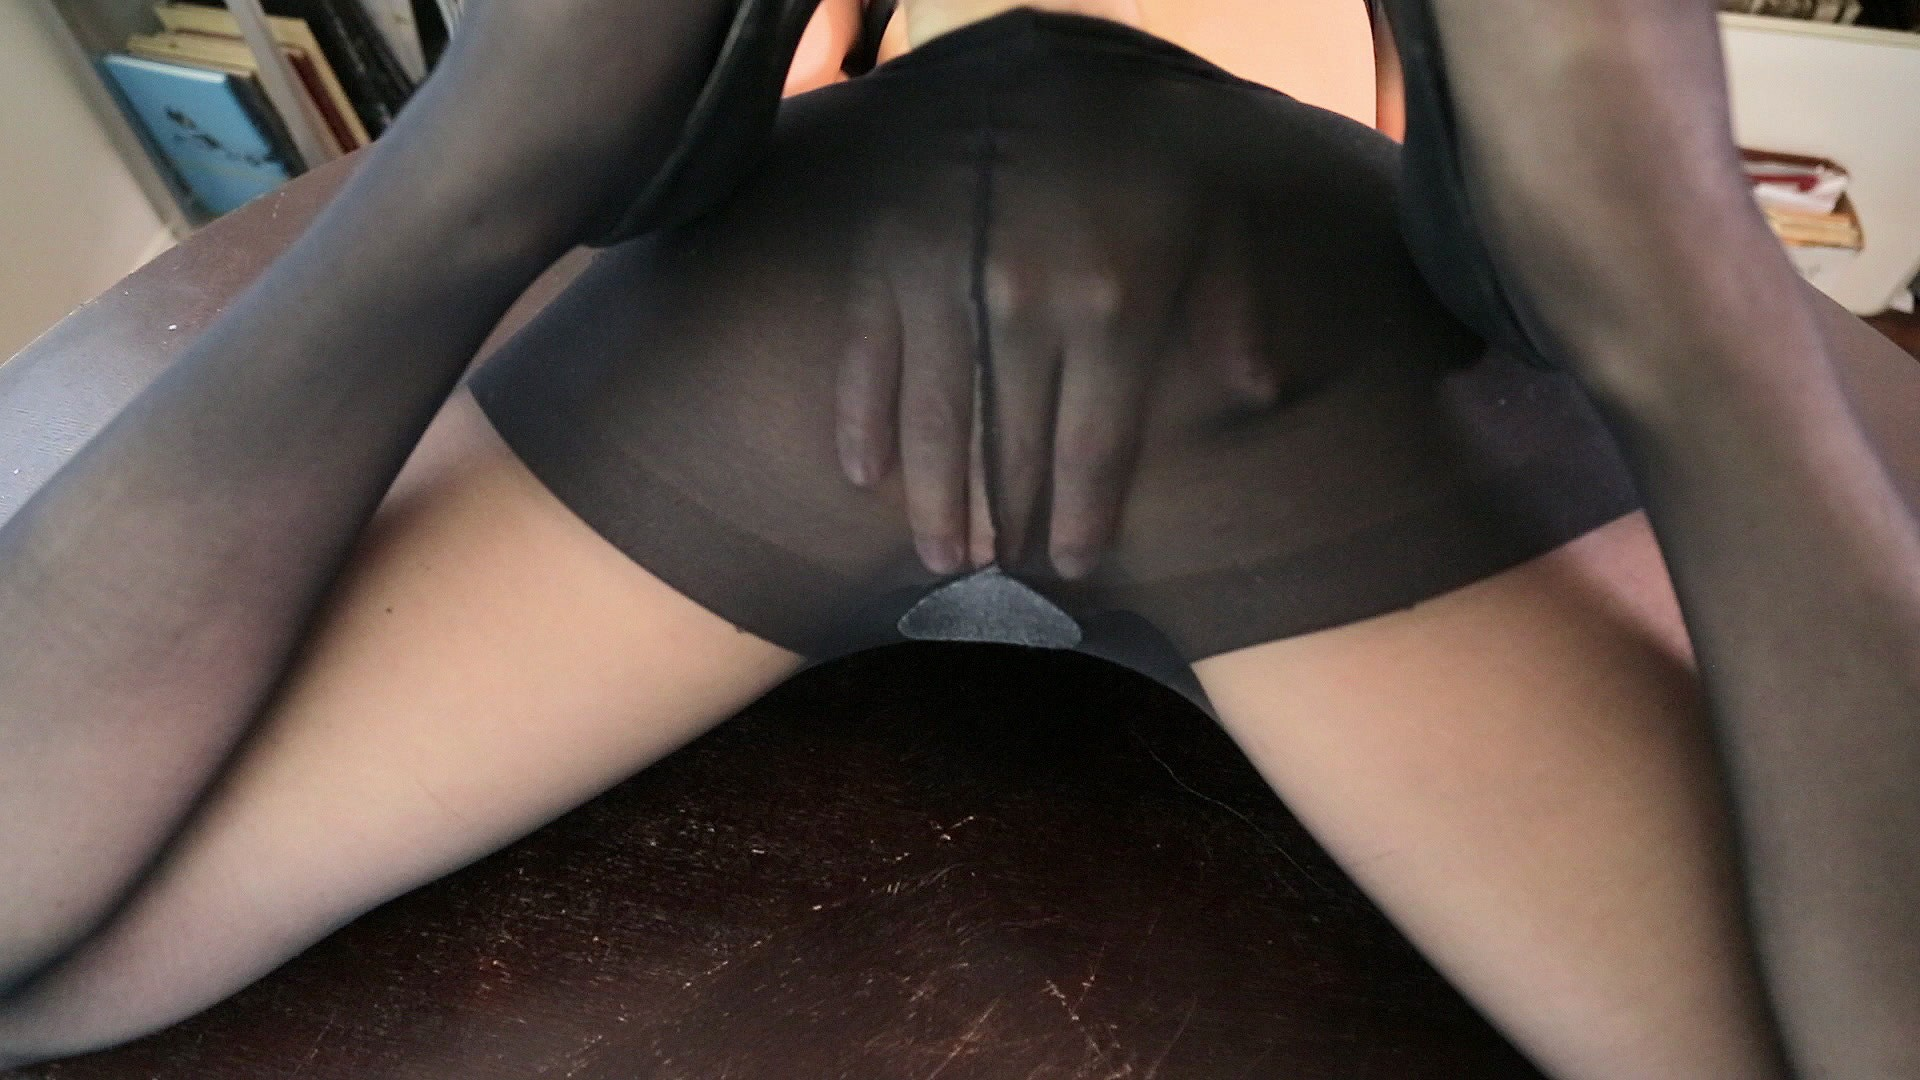 amateur porn with small penis faces